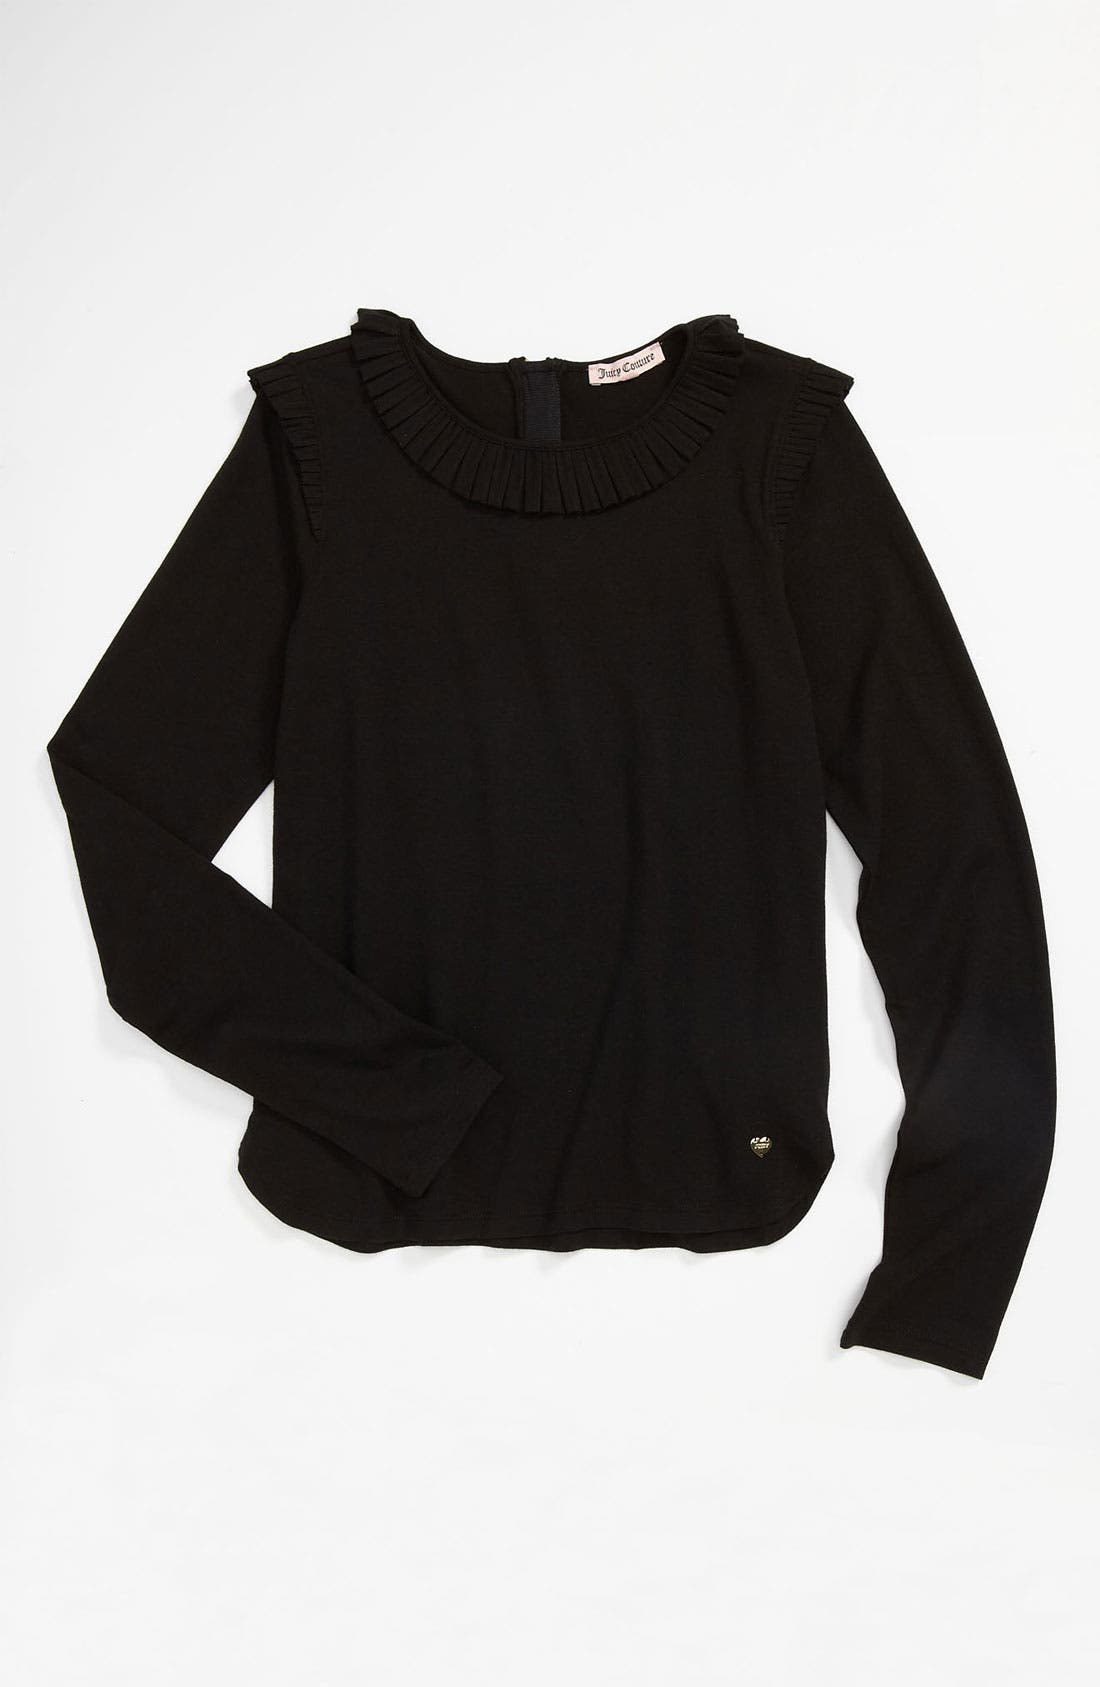 Main Image - Juicy Couture Ruffle Pleat Top (Little Girls & Big Girls)